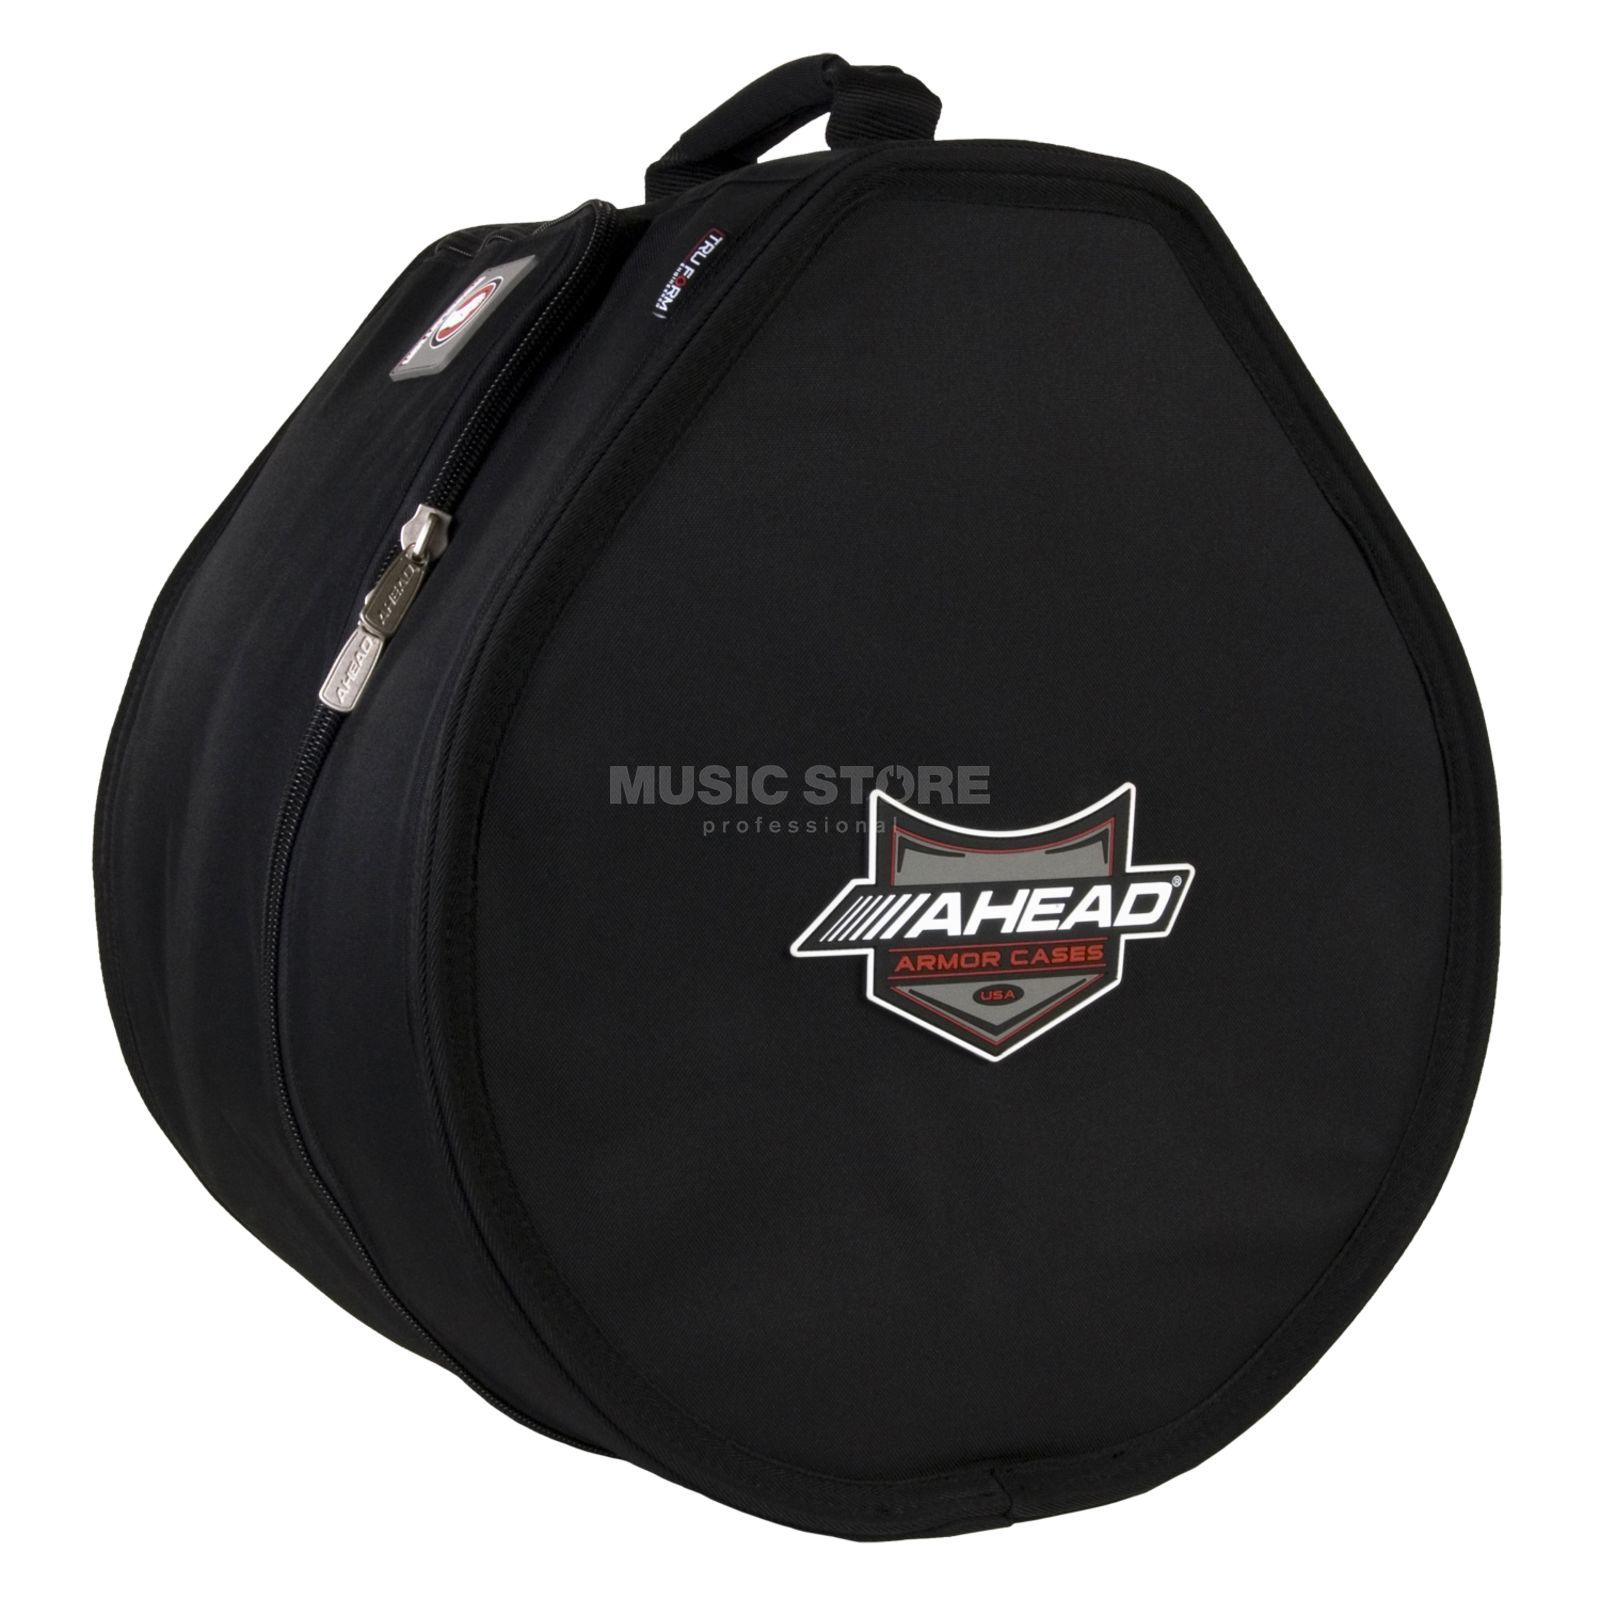 "Ahead Armor Cases Tom Bag 13""x10""  Produktbild"